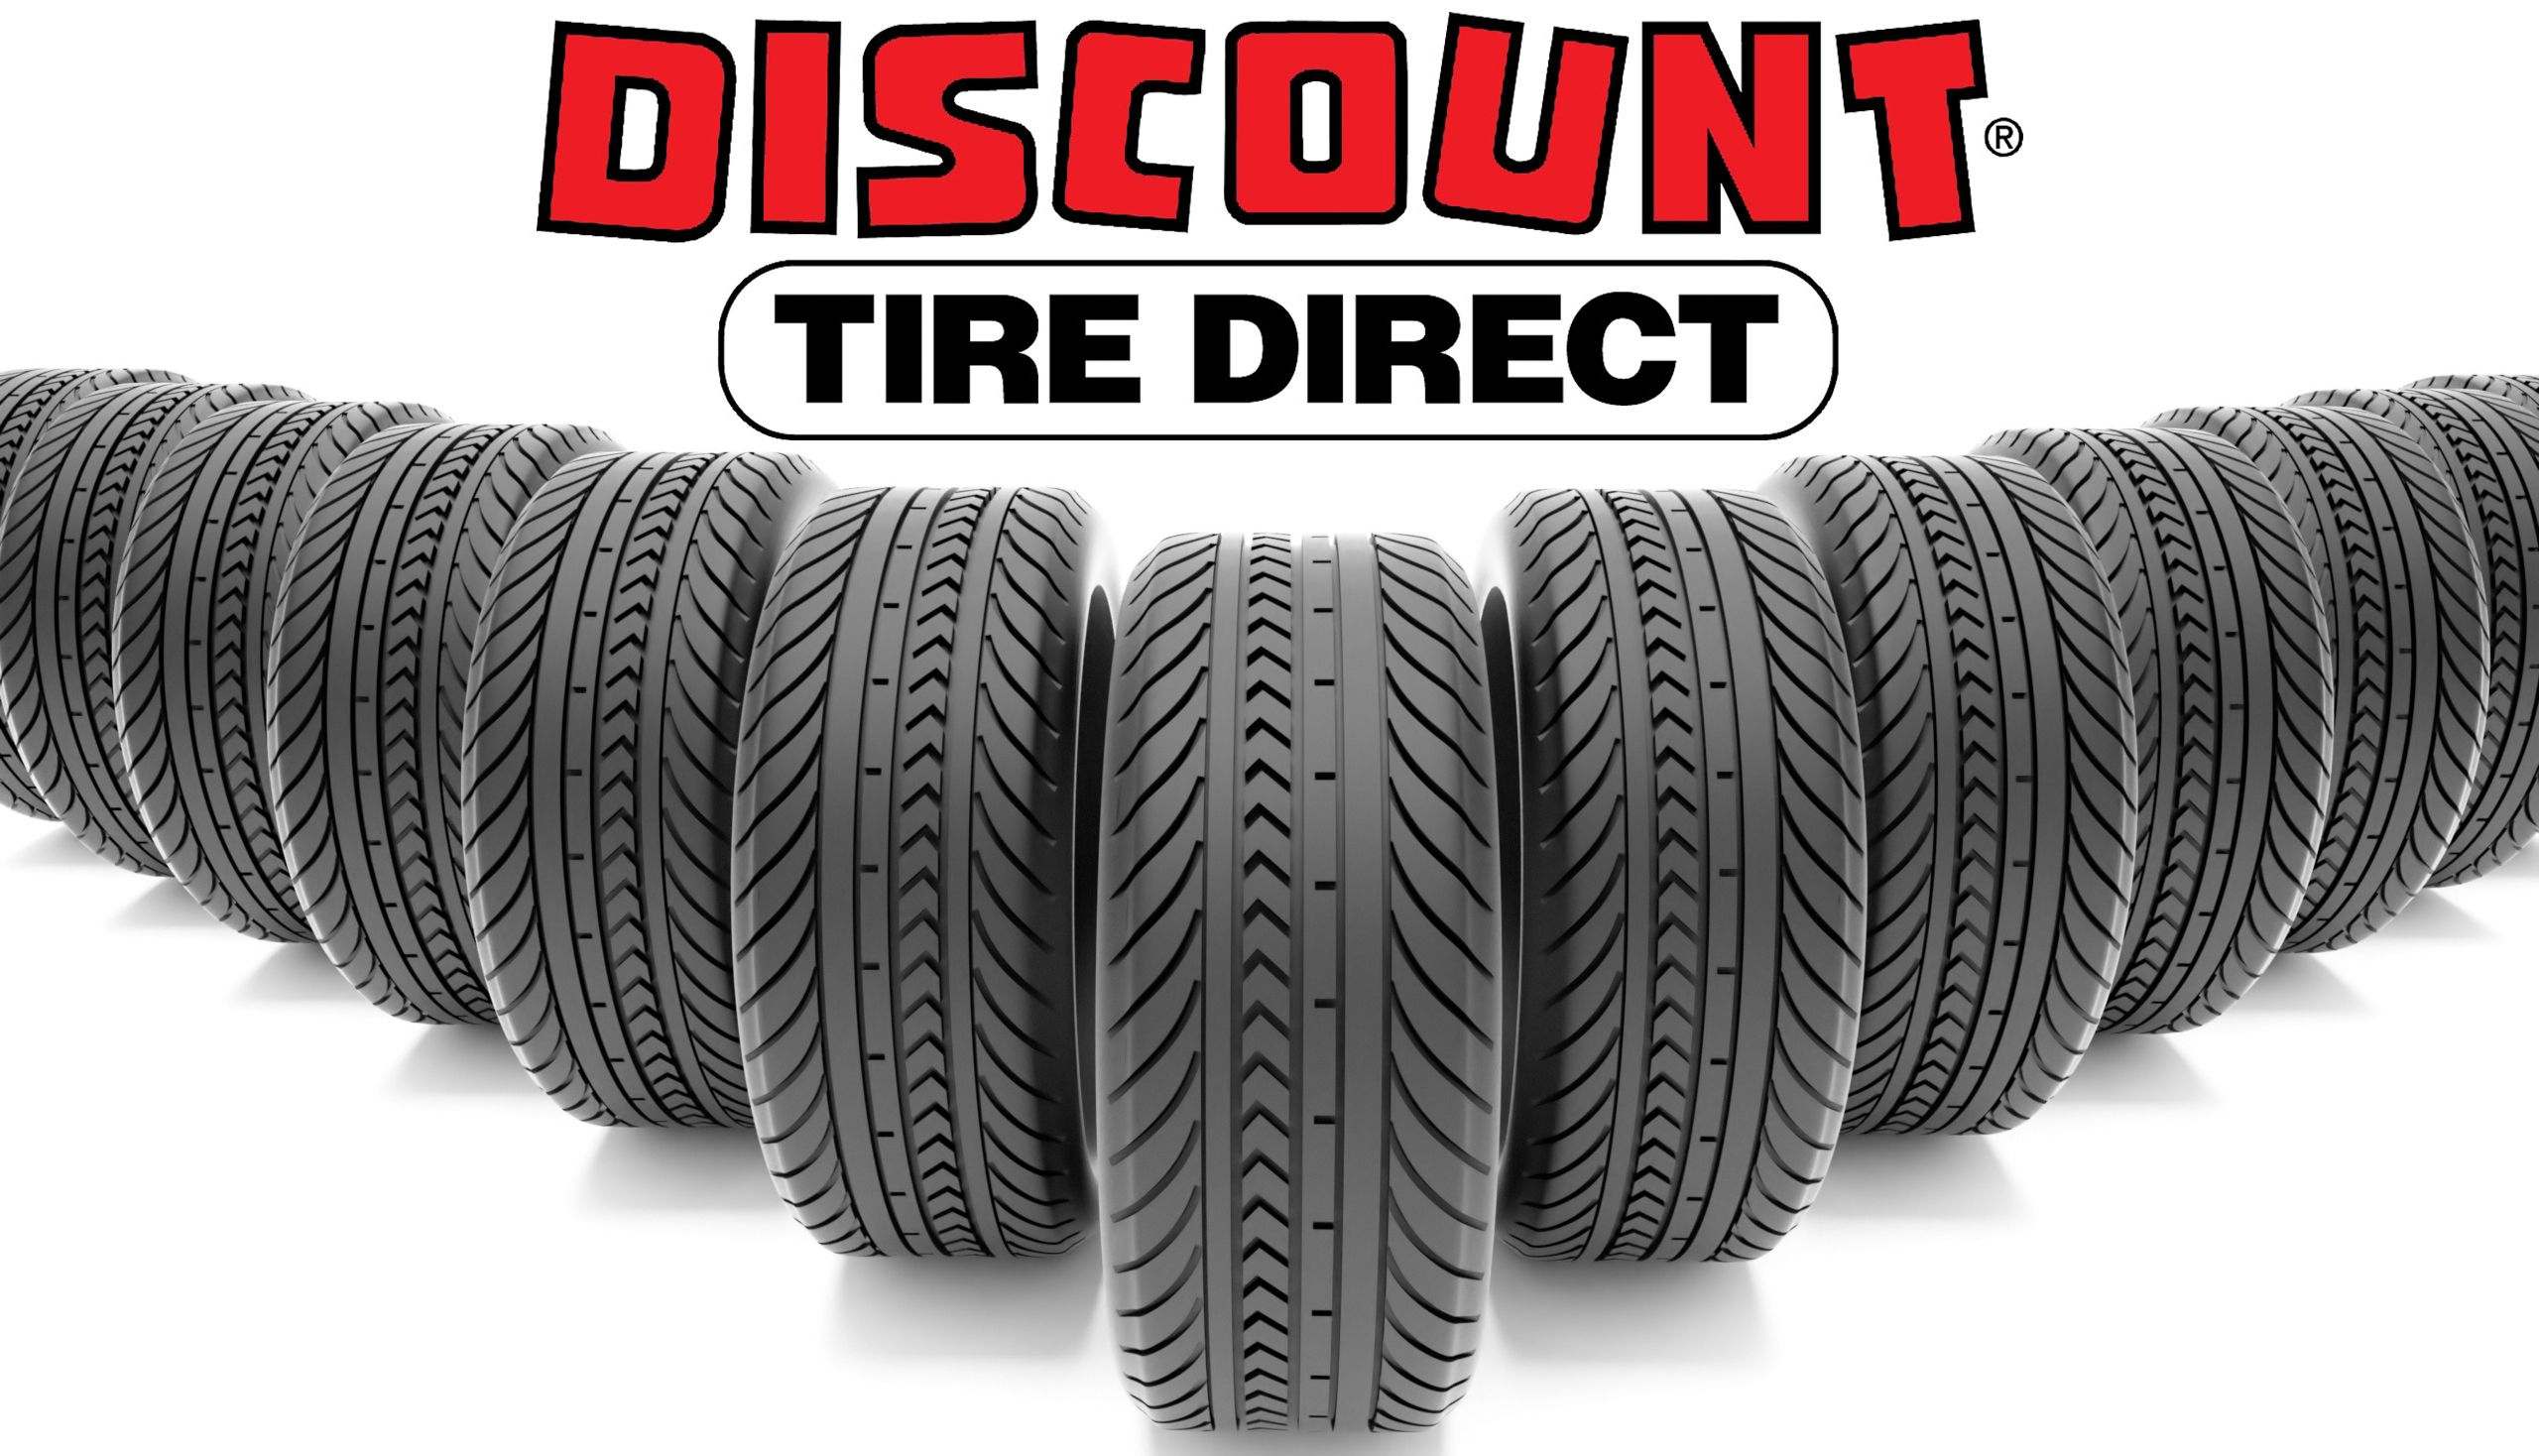 Discount Tire Direct High Quality Tires And Wheels Discount Tires Tires For Sale Cheap Tires